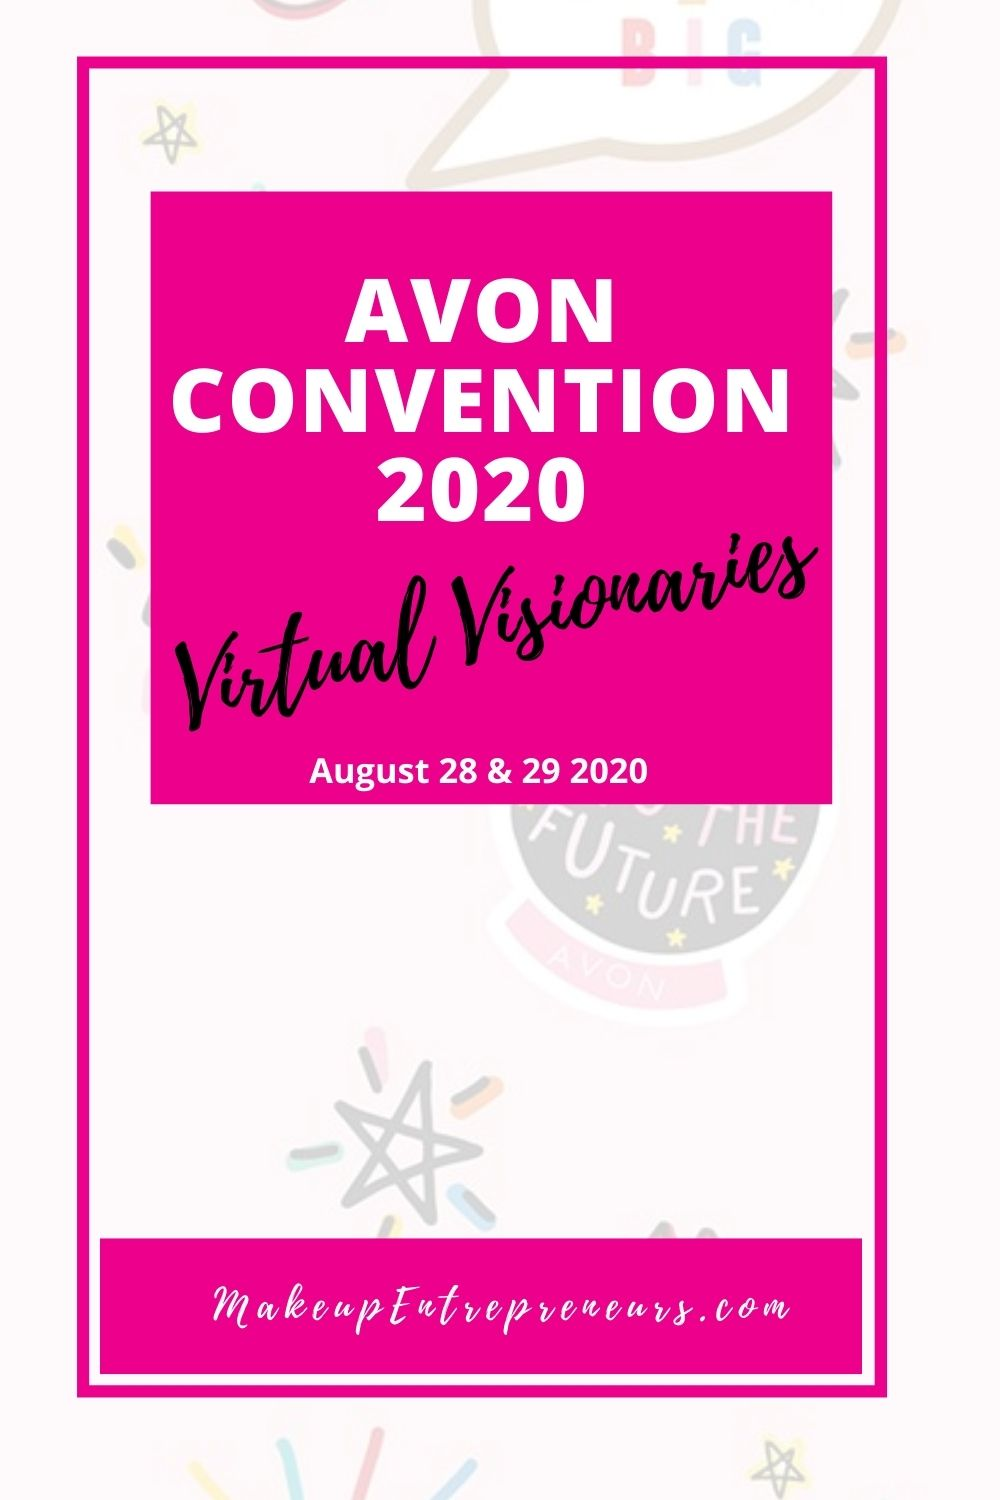 Avon Convention 2020 Virtual Visionaries